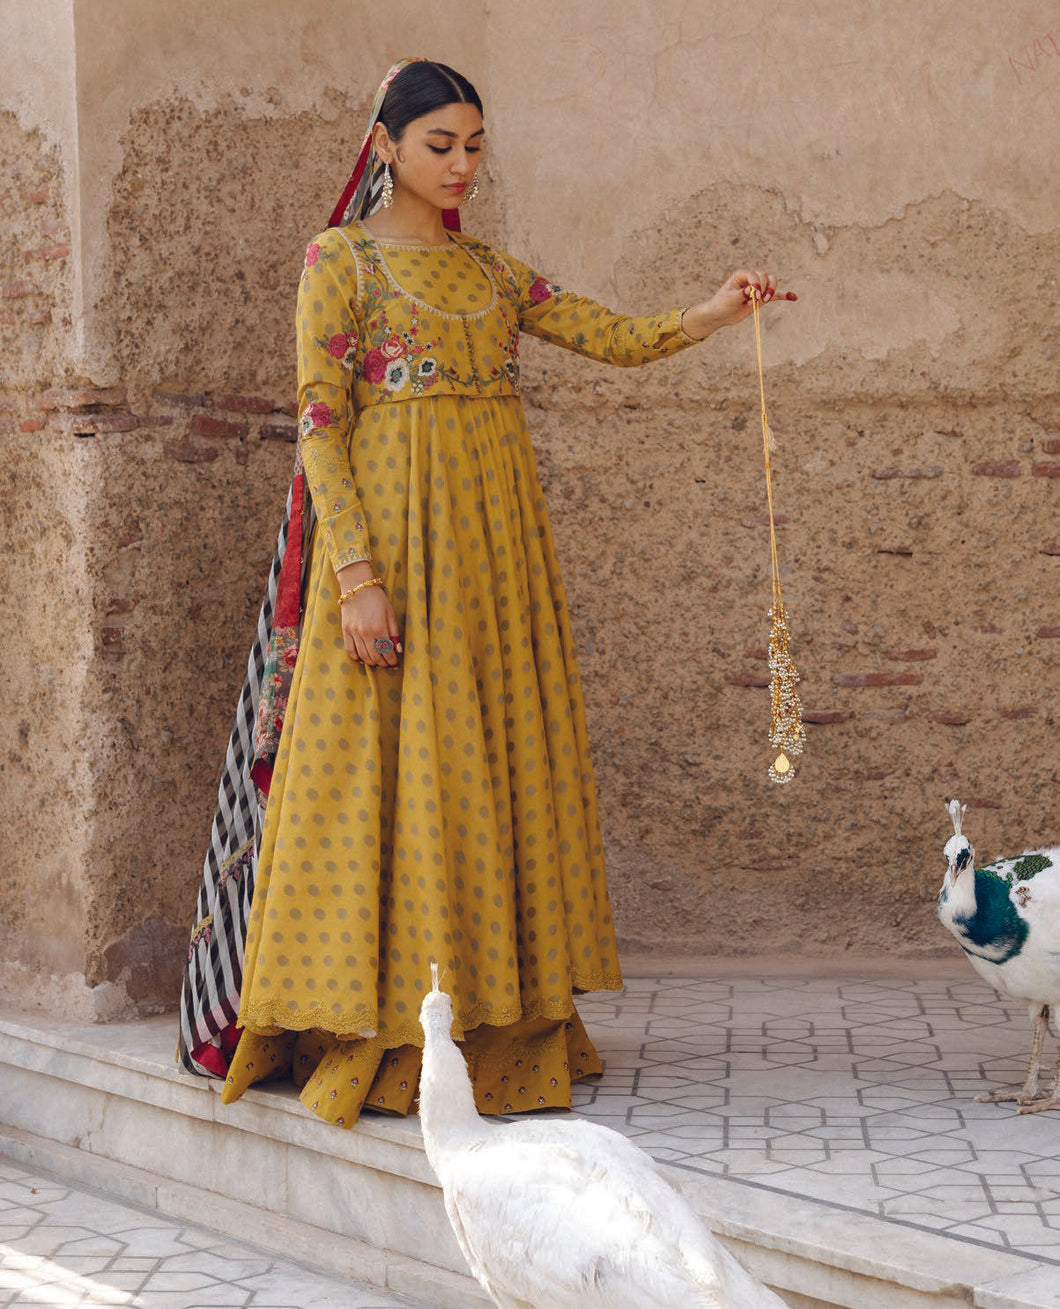 ZARA SHANJAHAN Meher Bano a Lawn Suit 2020 online Pakistani designer dress Anarkali Suits Party Werar Indian Dresses